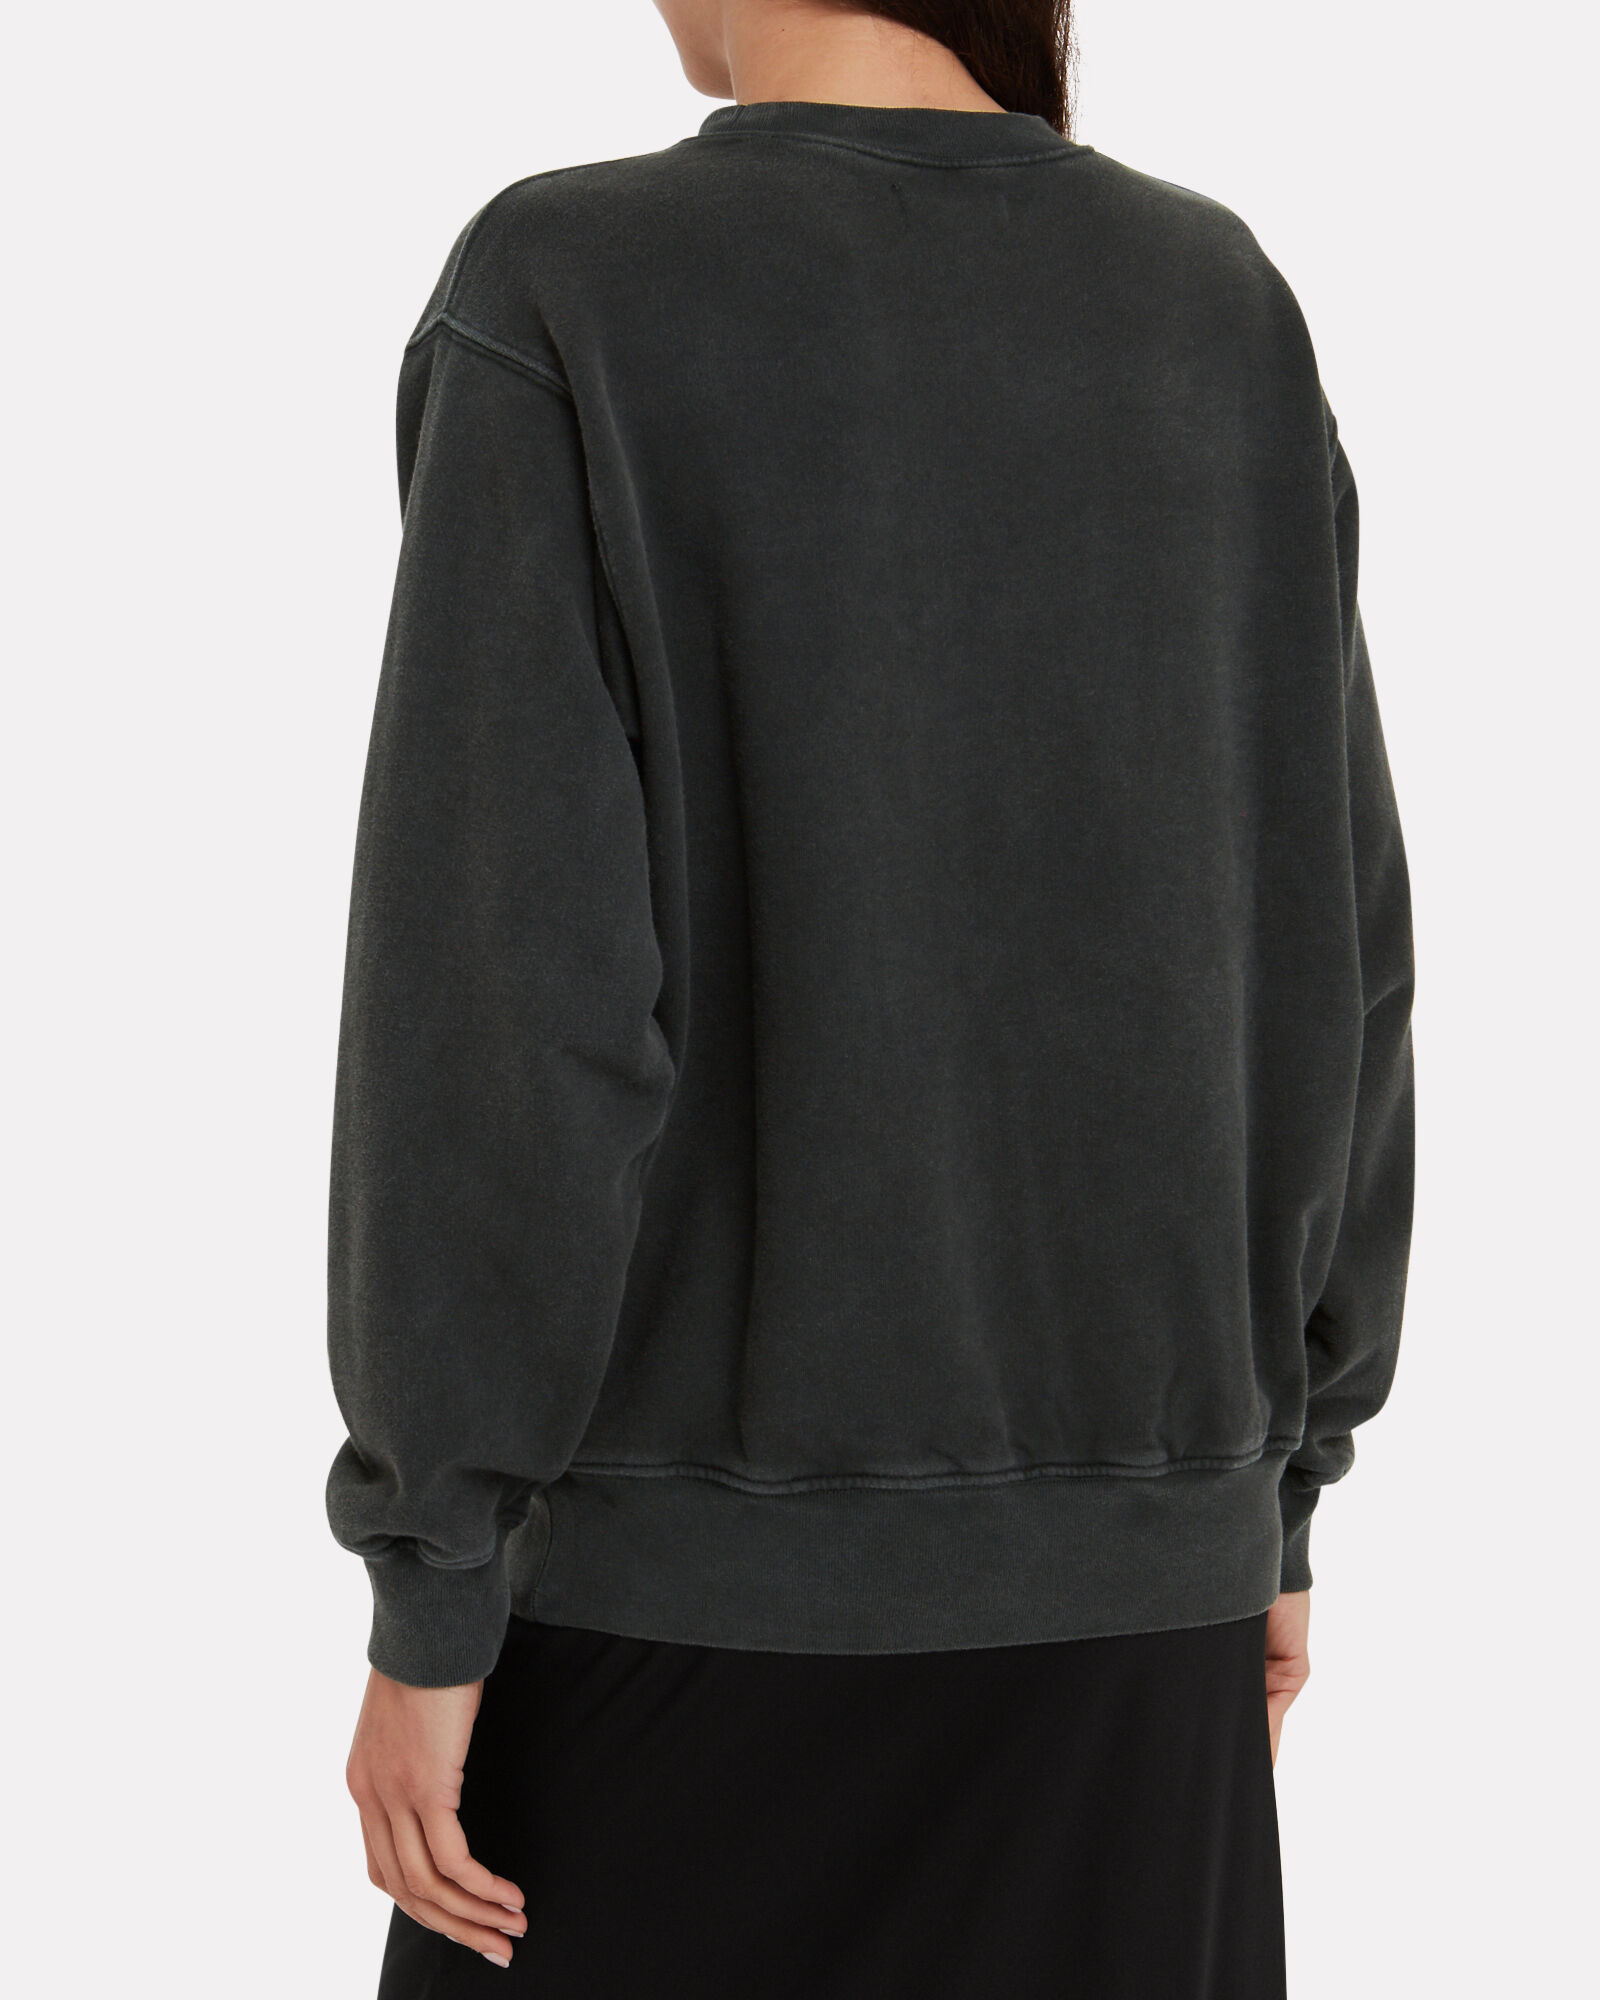 Ramona Printed Sweatshirt, BLACK, hi-res